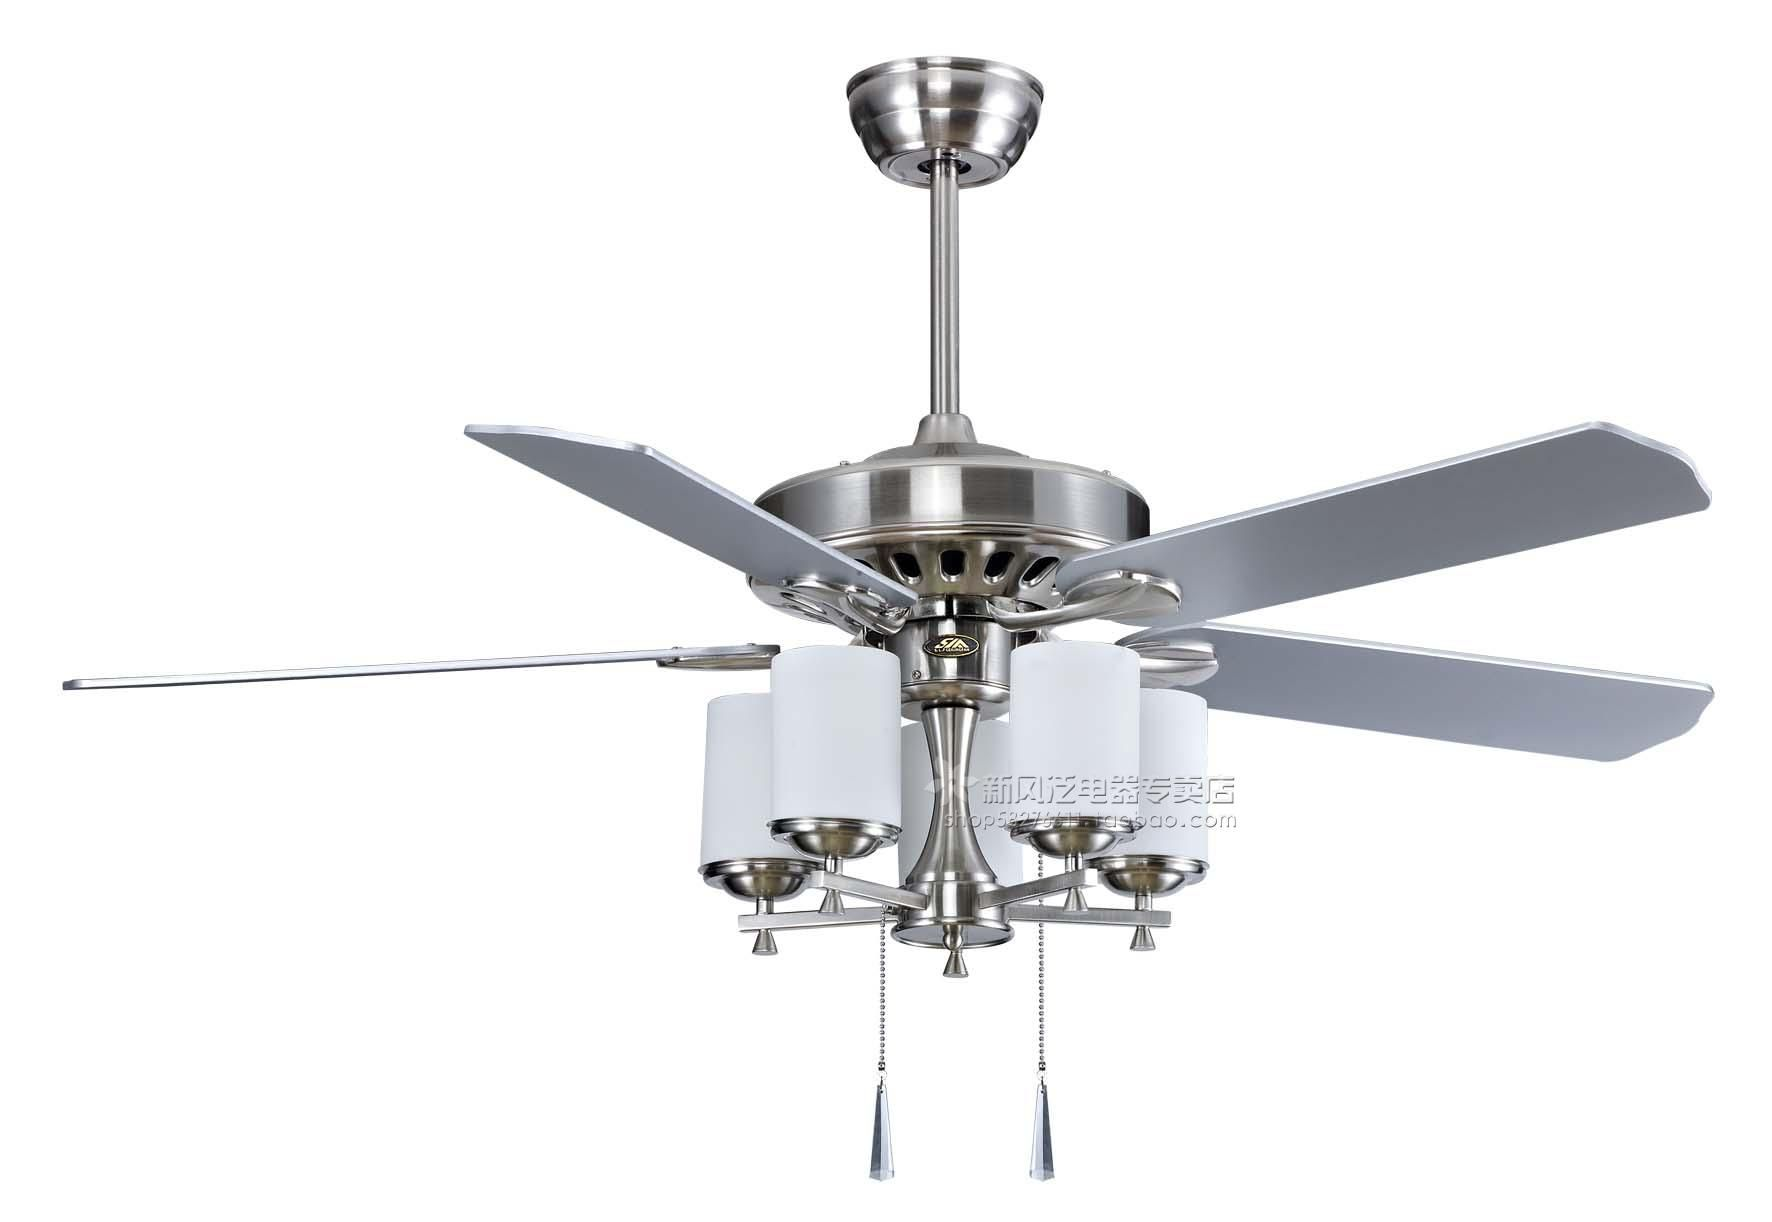 Ceiling fans silver ceiling fan lights mute belt light fan lamp aliexpress silver ceiling fan online shopping sitethe world largest silver ceiling fan retail shopping guide platformoffers silver ceiling fan buying mozeypictures Images